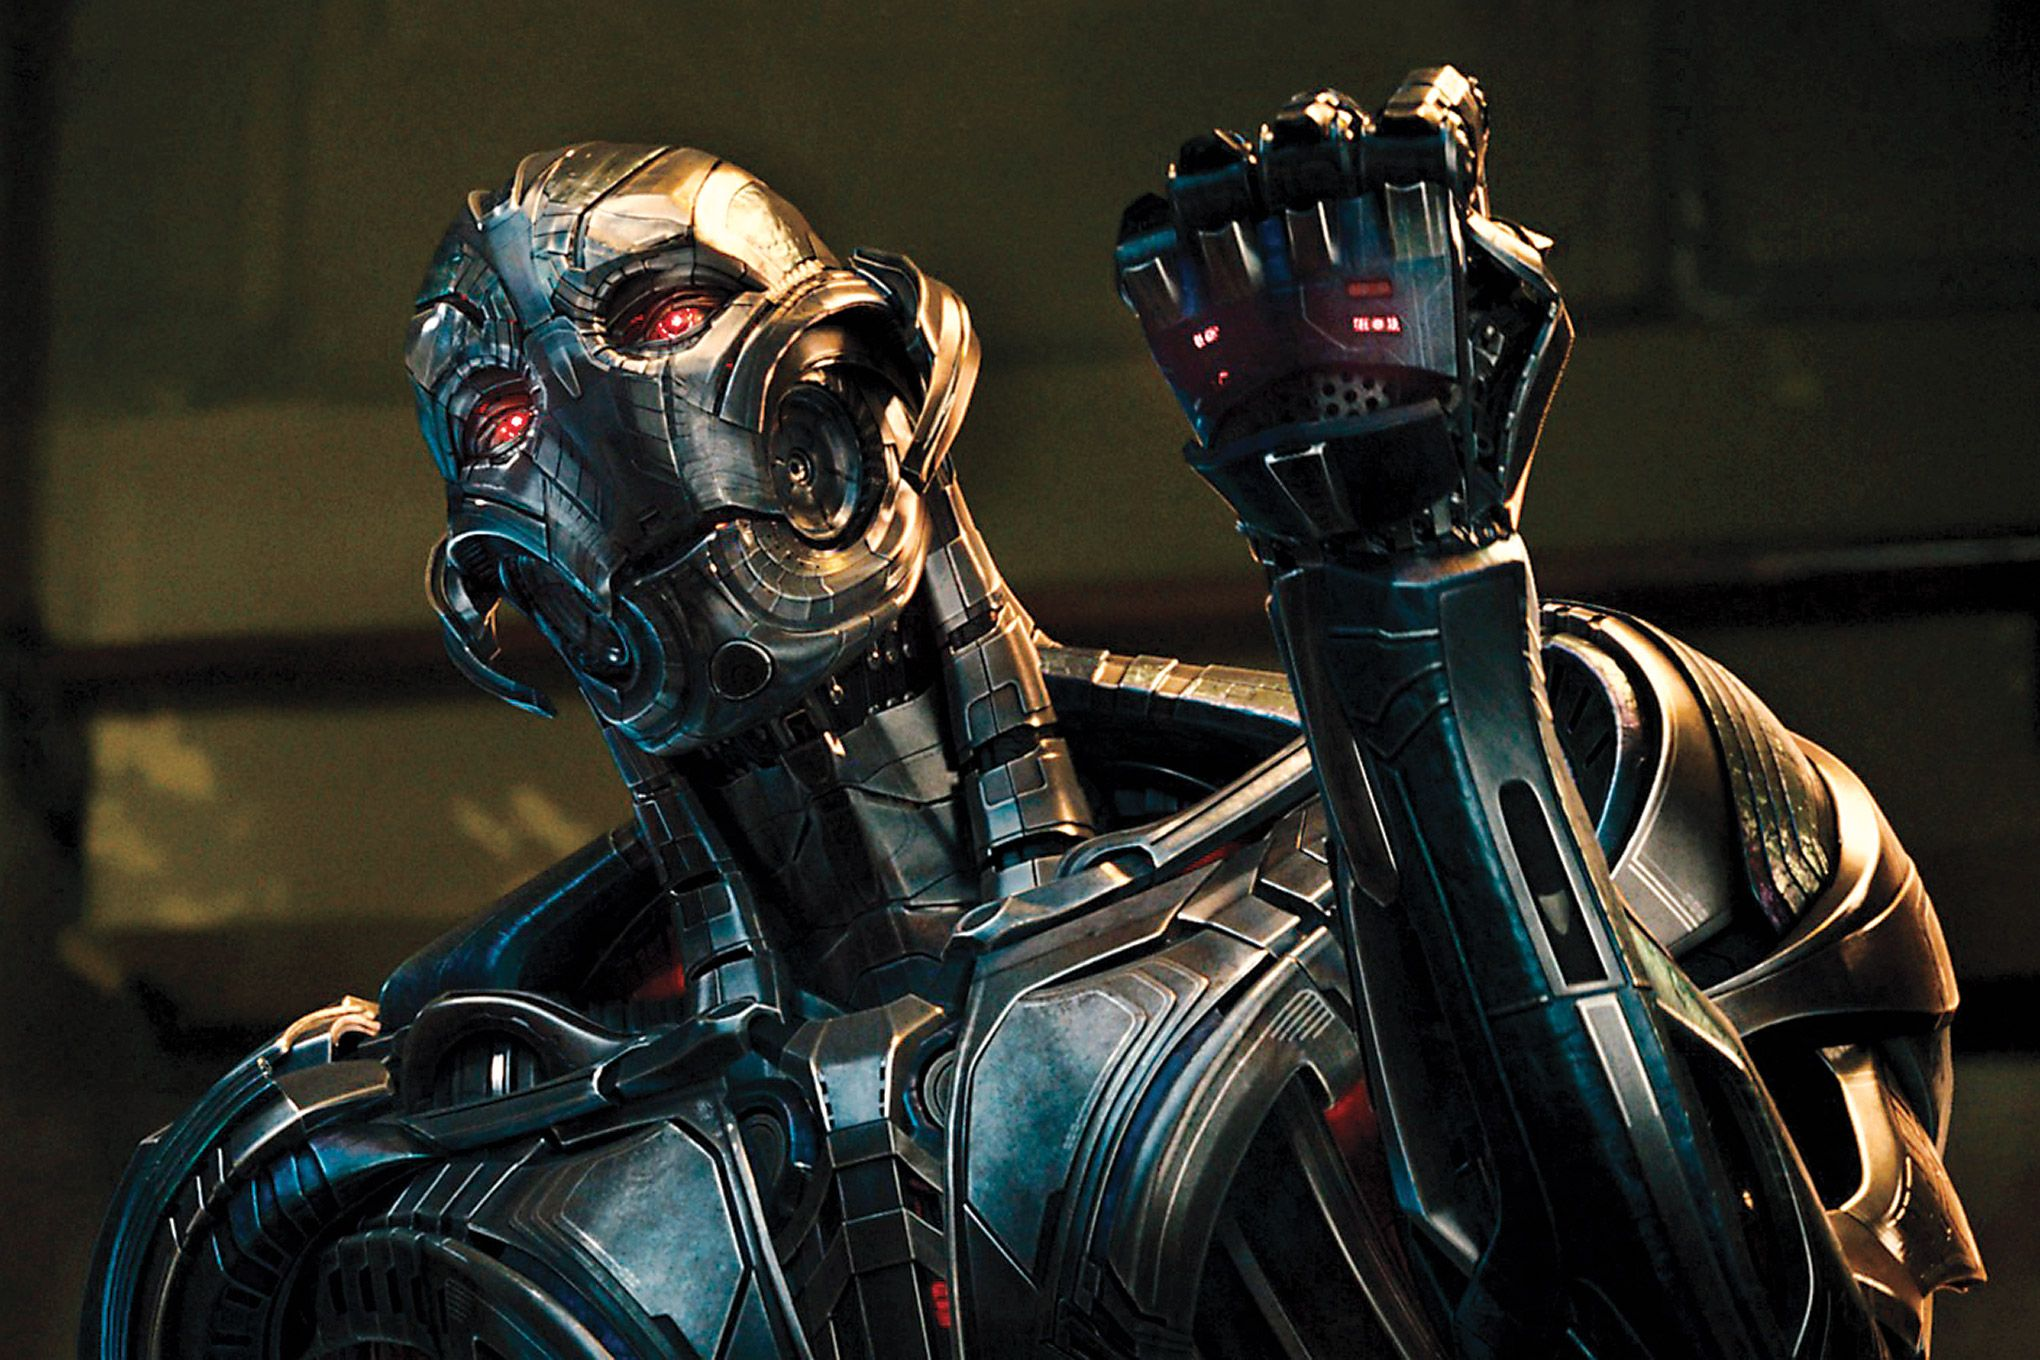 Avengers: Damage Control recasts Ultron with another Marvel villain actor